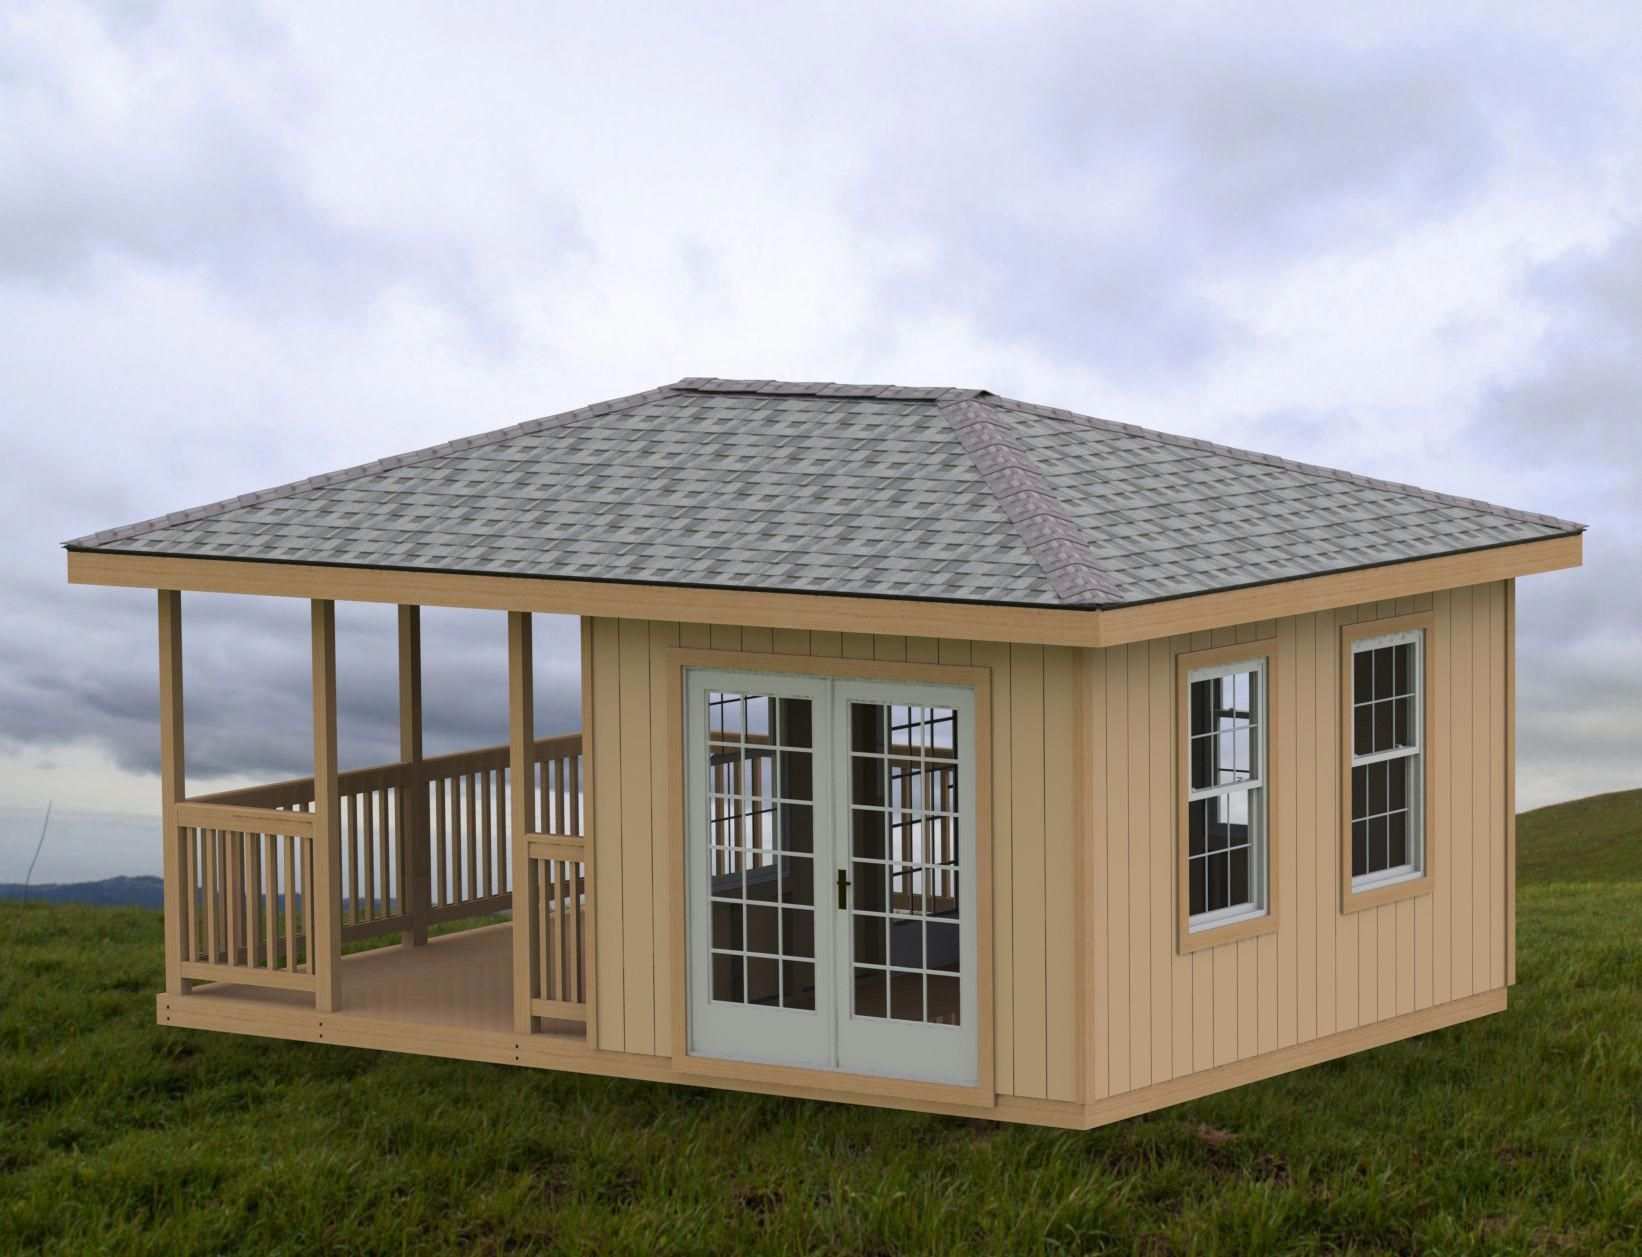 20 X 10 Gazebo Shed Man Cave Downloadable Building Plans Smallstorageshedideas Diy Shed Plans Wood Shed Plans Shed Plans 12x16